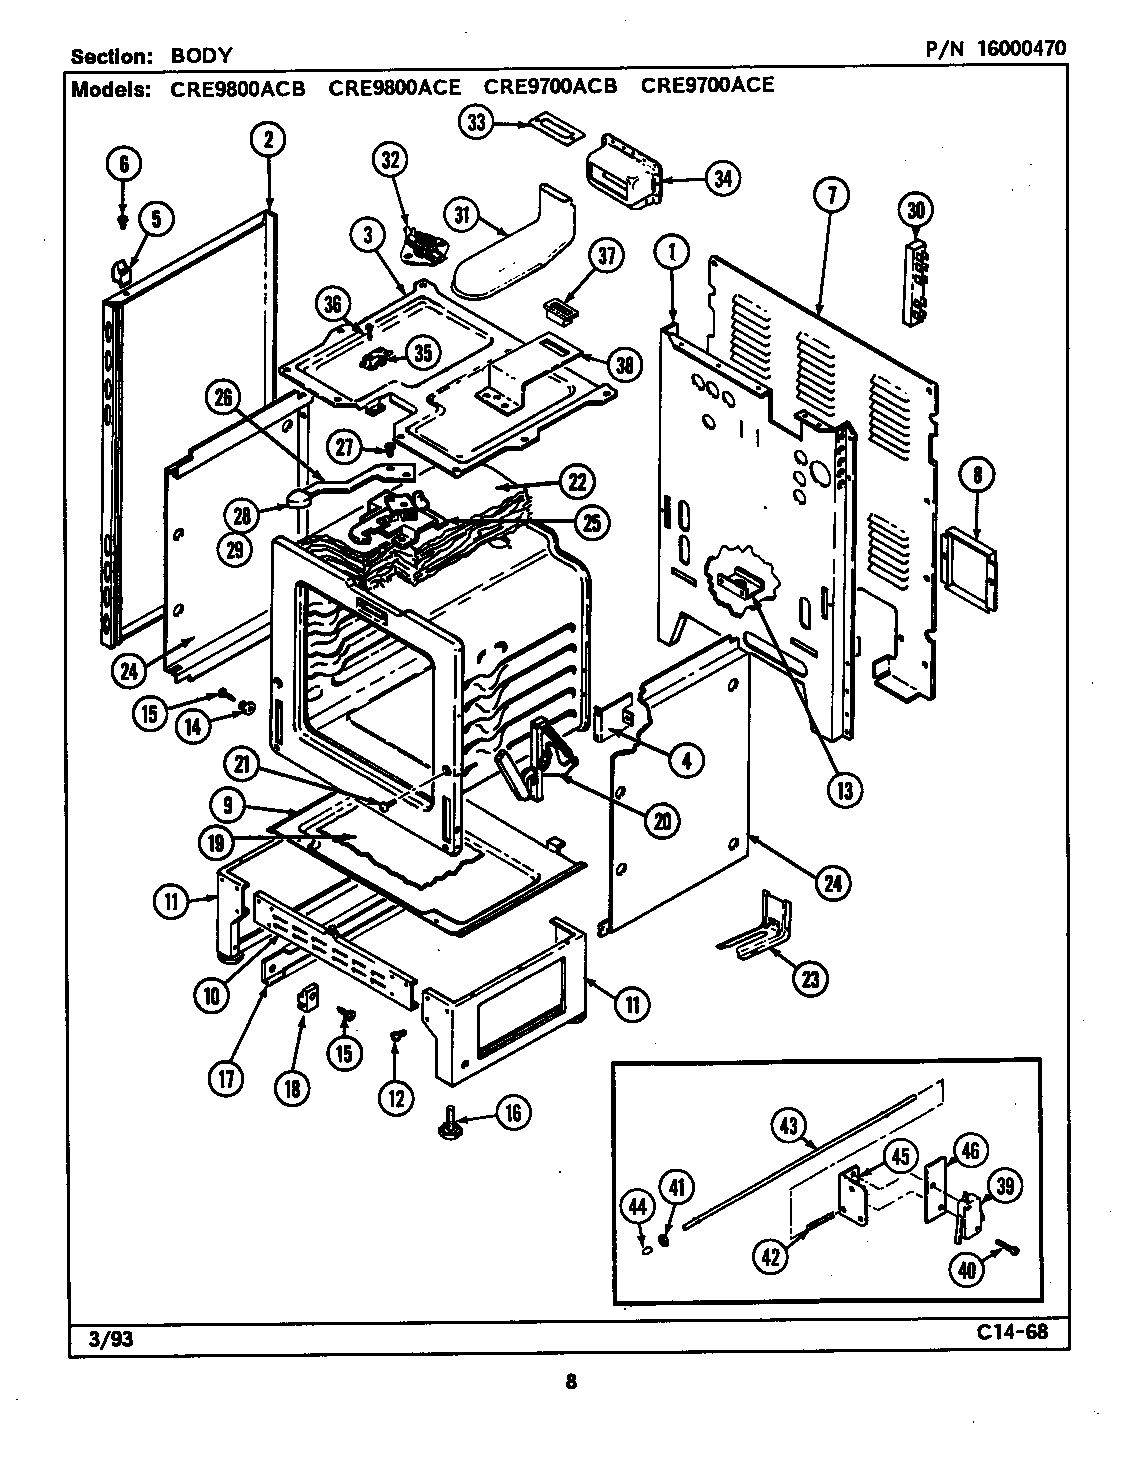 Maytag Dryer Wiring Diagram Problems